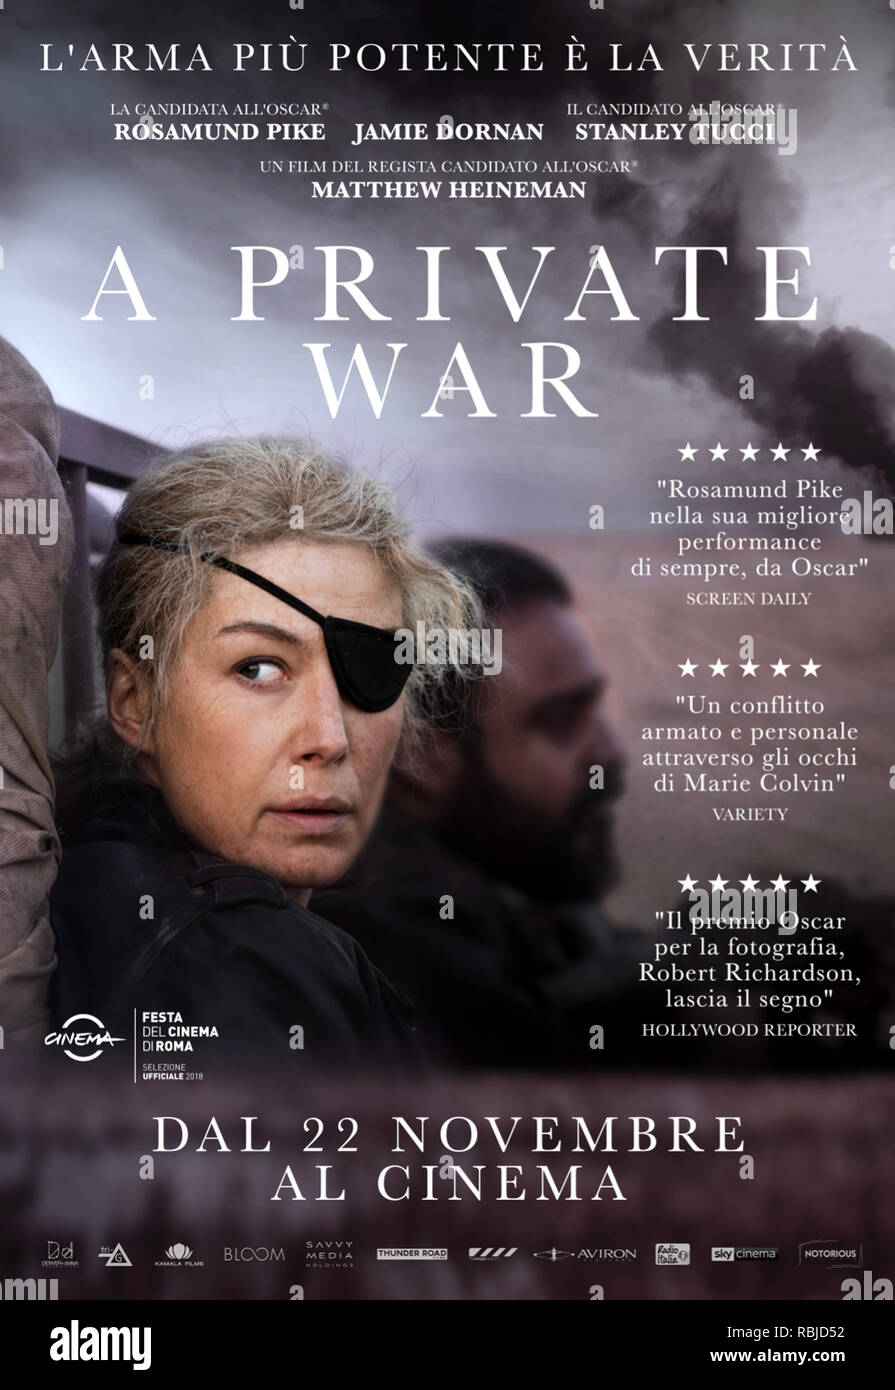 Prod DB © Acacia Filmed Entertainment - Thunder Road Pictures / DR A PRIVATE WAR de Matthew Heineman 2018 USA/GB teaser italien Rosamund Pike Jamie Dornan Stanley Tucci biopic; biography; femme journaliste; journalist; Marie Colvin; femme reporter; borgne; one eyed; cache-oeil noir; eyepatch based on the Vanity Fair article 'Marie Colvin's Private War' by Marie Brenner d'apres l'article de Marie Brenner - Stock Image